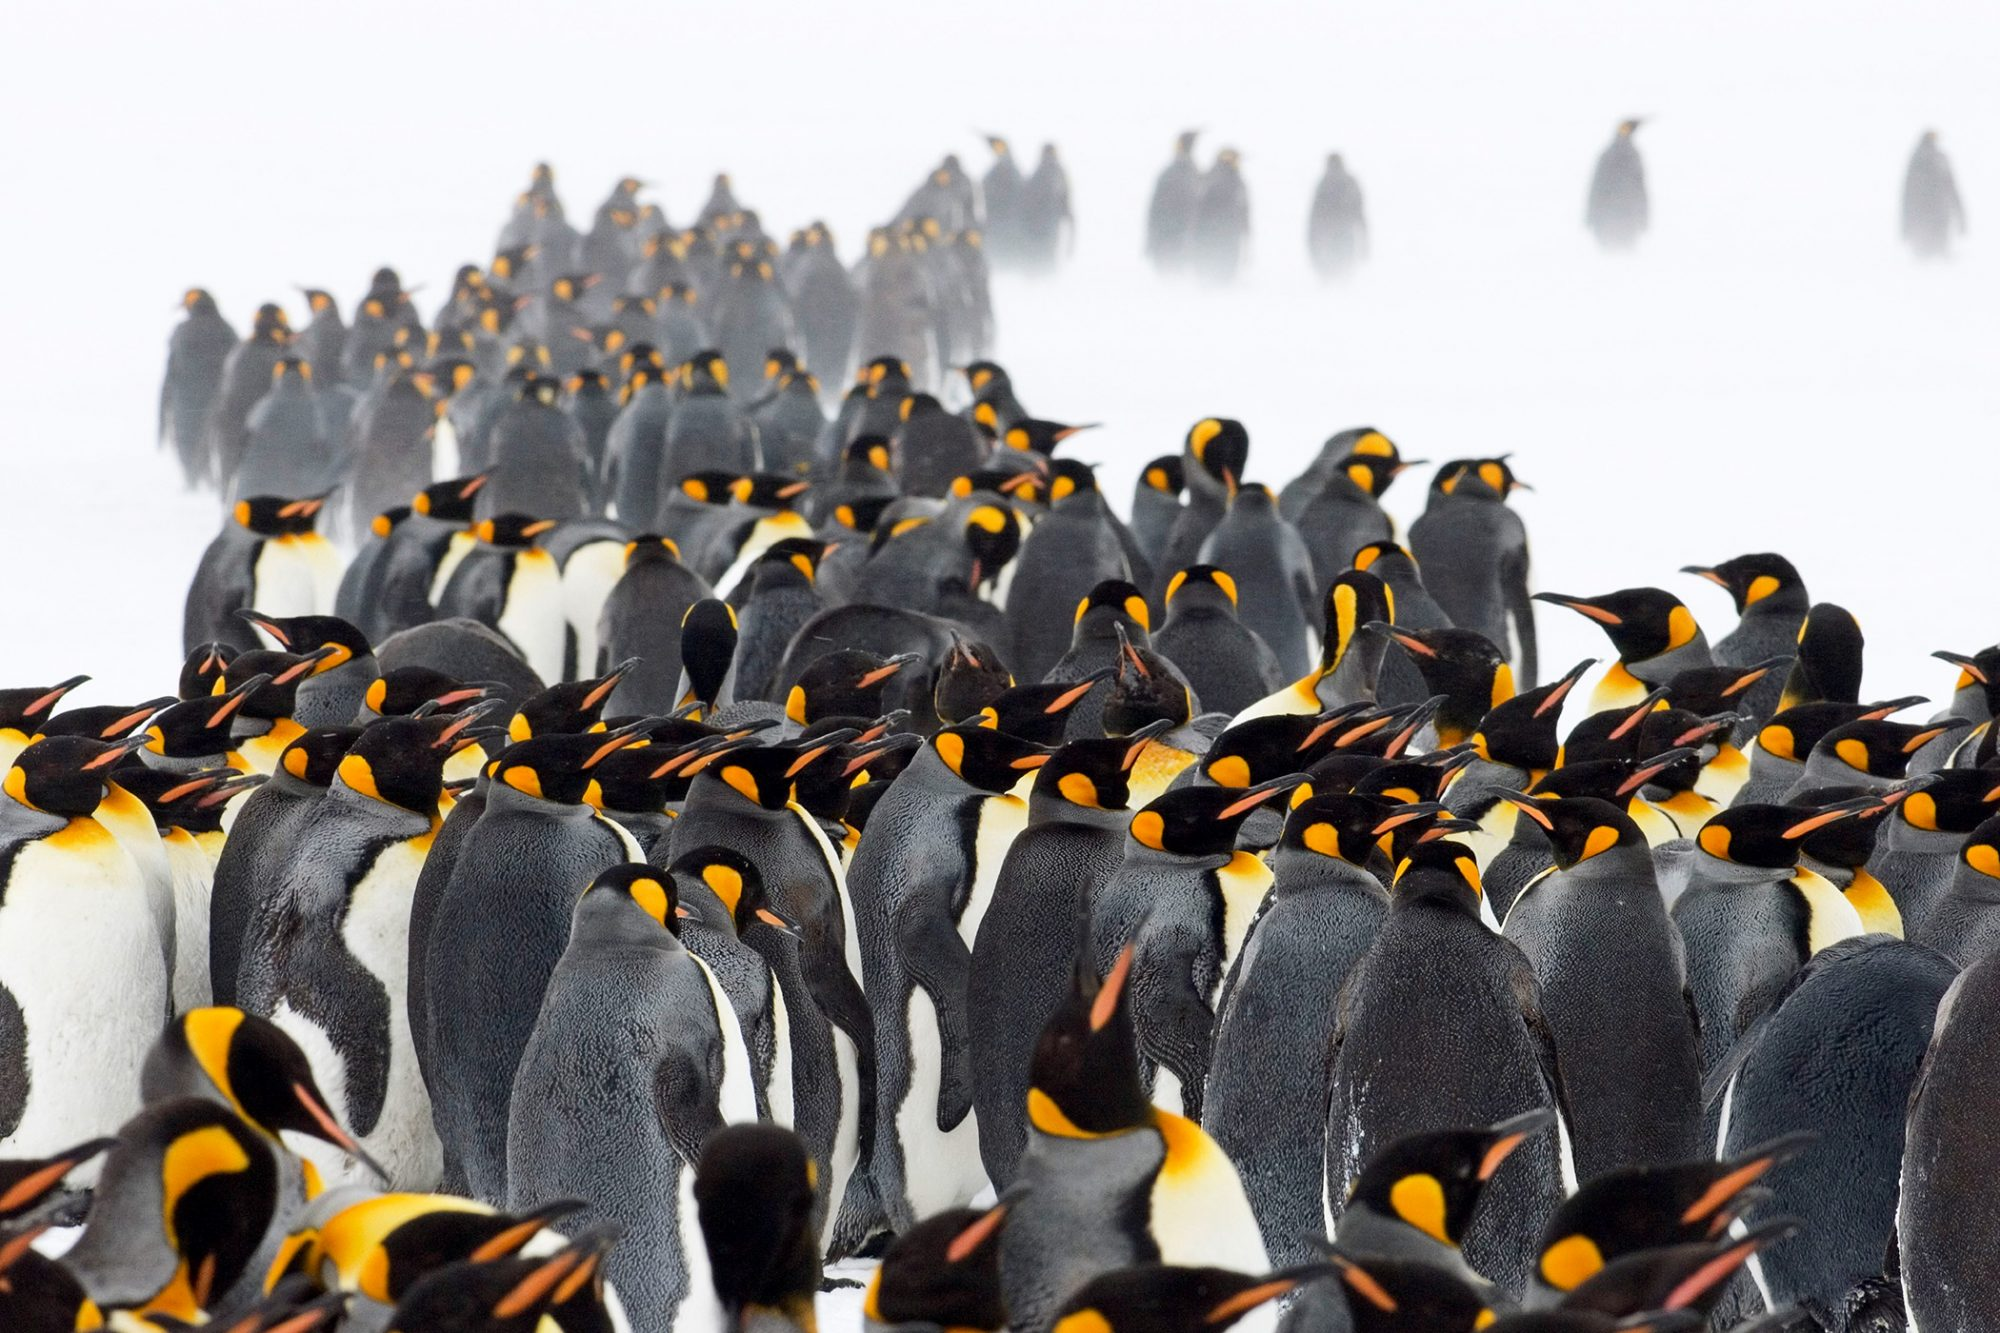 Bunch of yellow and white penguins